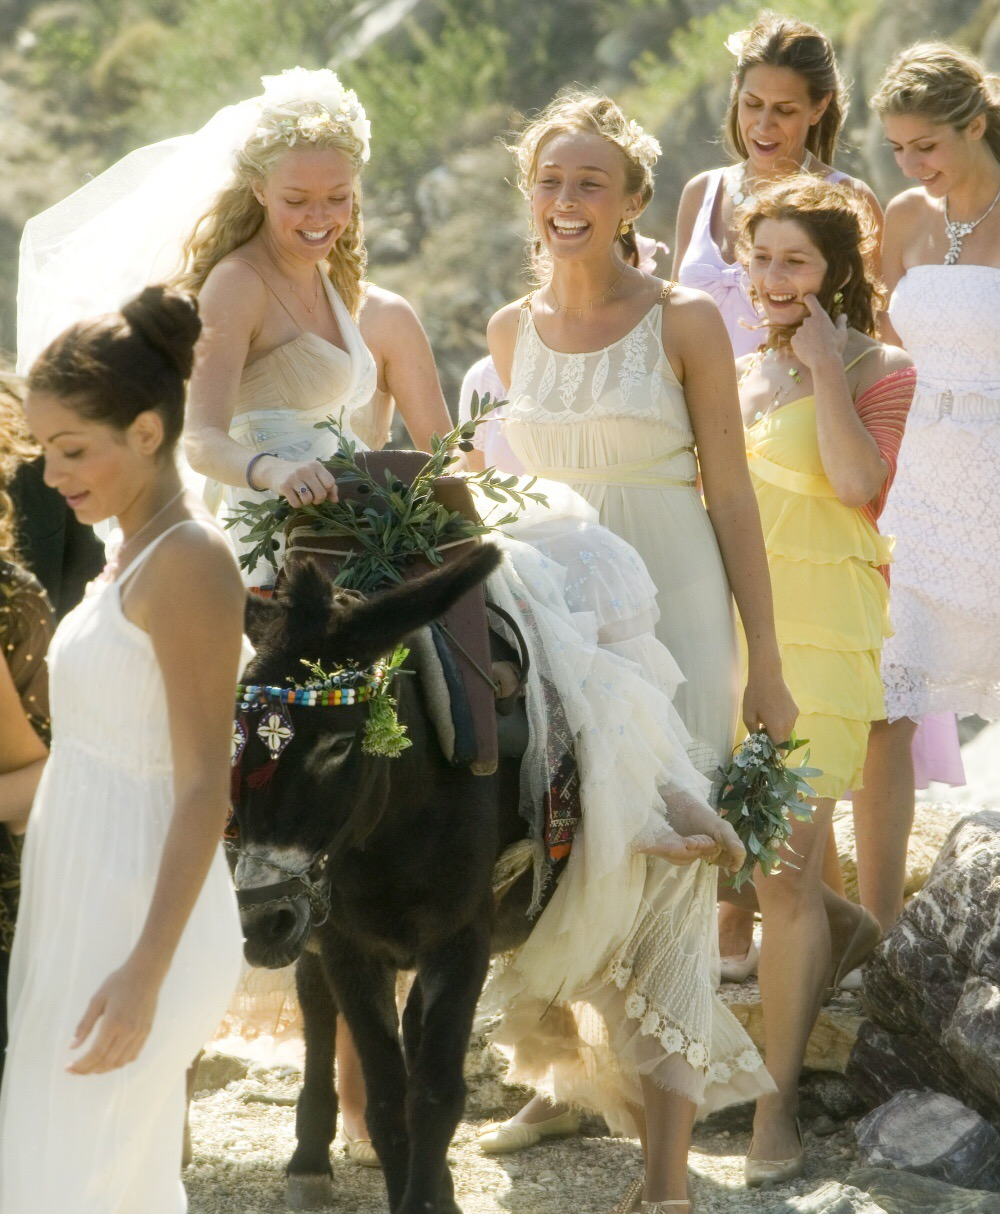 movie scene from 'Mamma Mia!' bride riding a horse